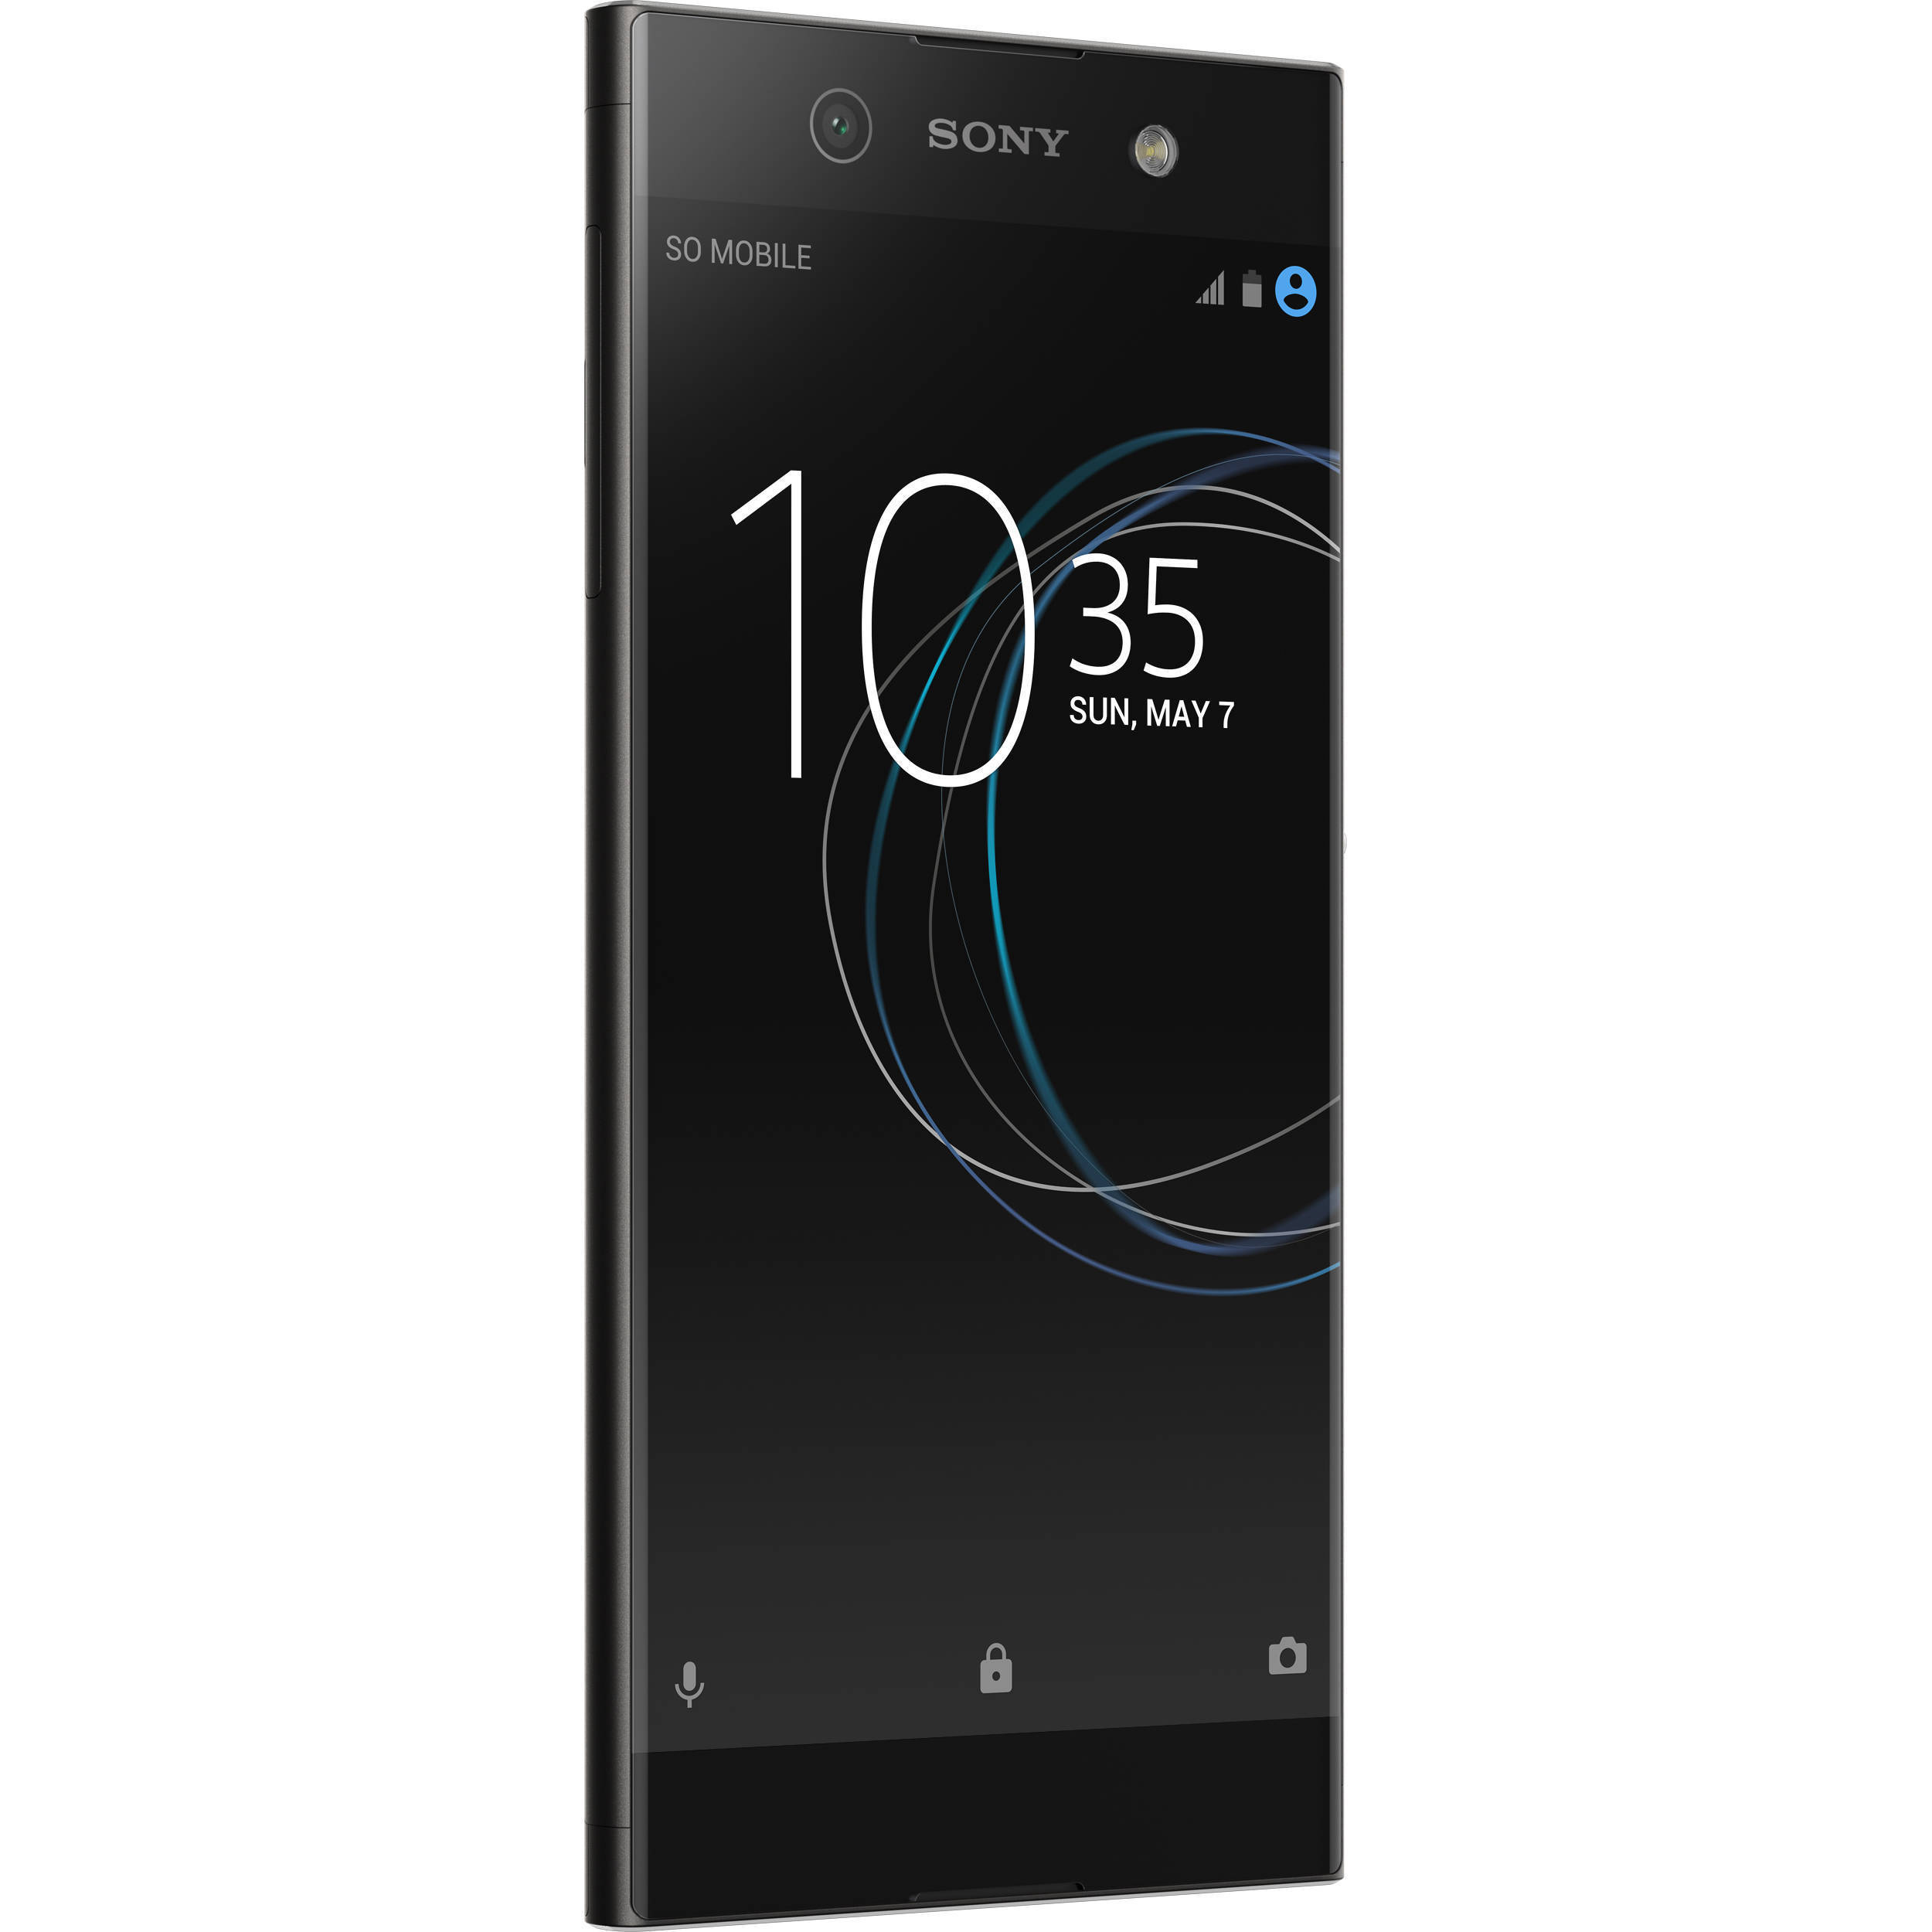 sony xperia xa1 ultra g3223 32gb smartphone 1308 0902 b h. Black Bedroom Furniture Sets. Home Design Ideas